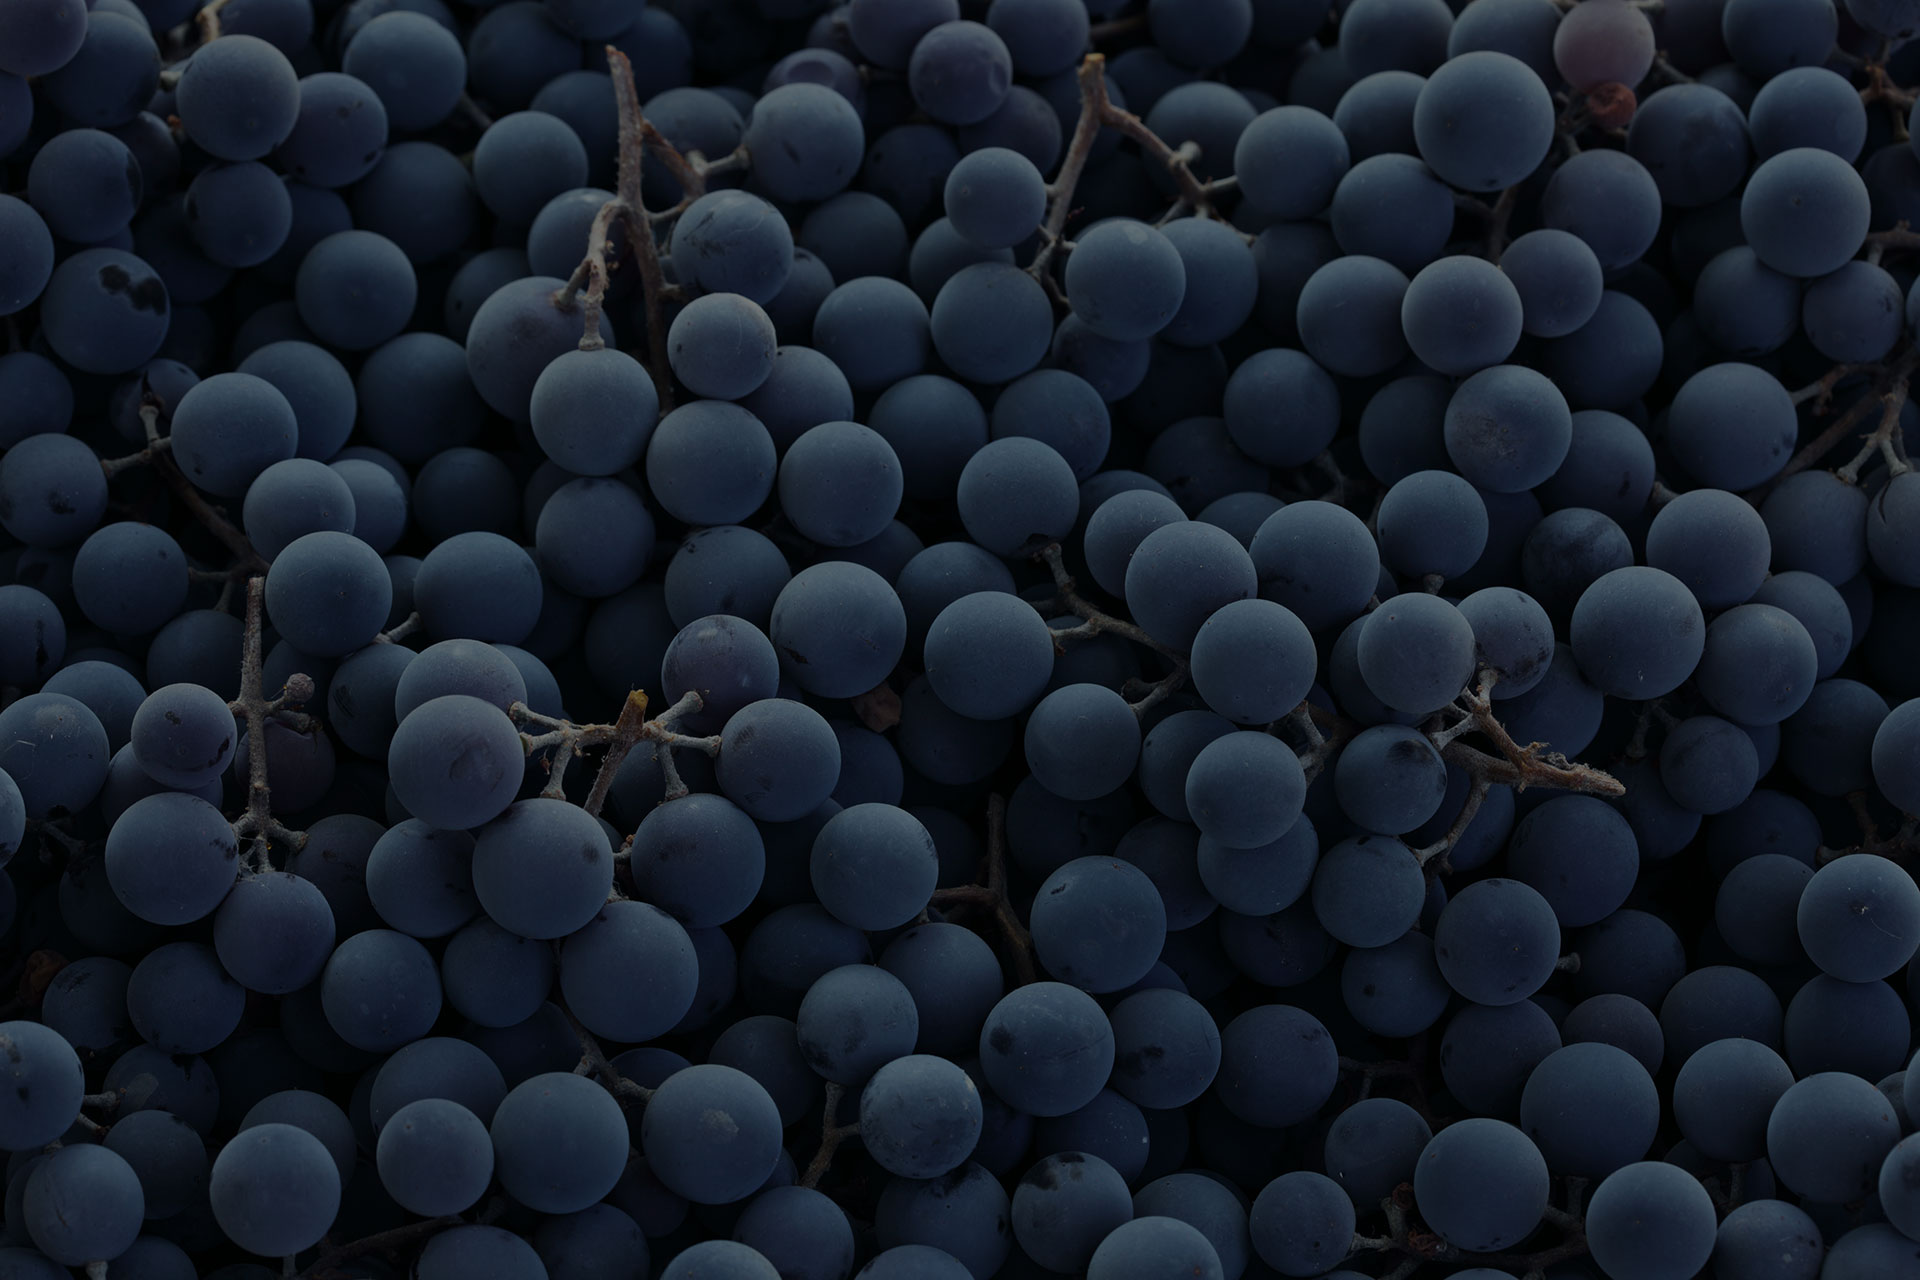 dark grapes/ blue grapes/ wine grapes